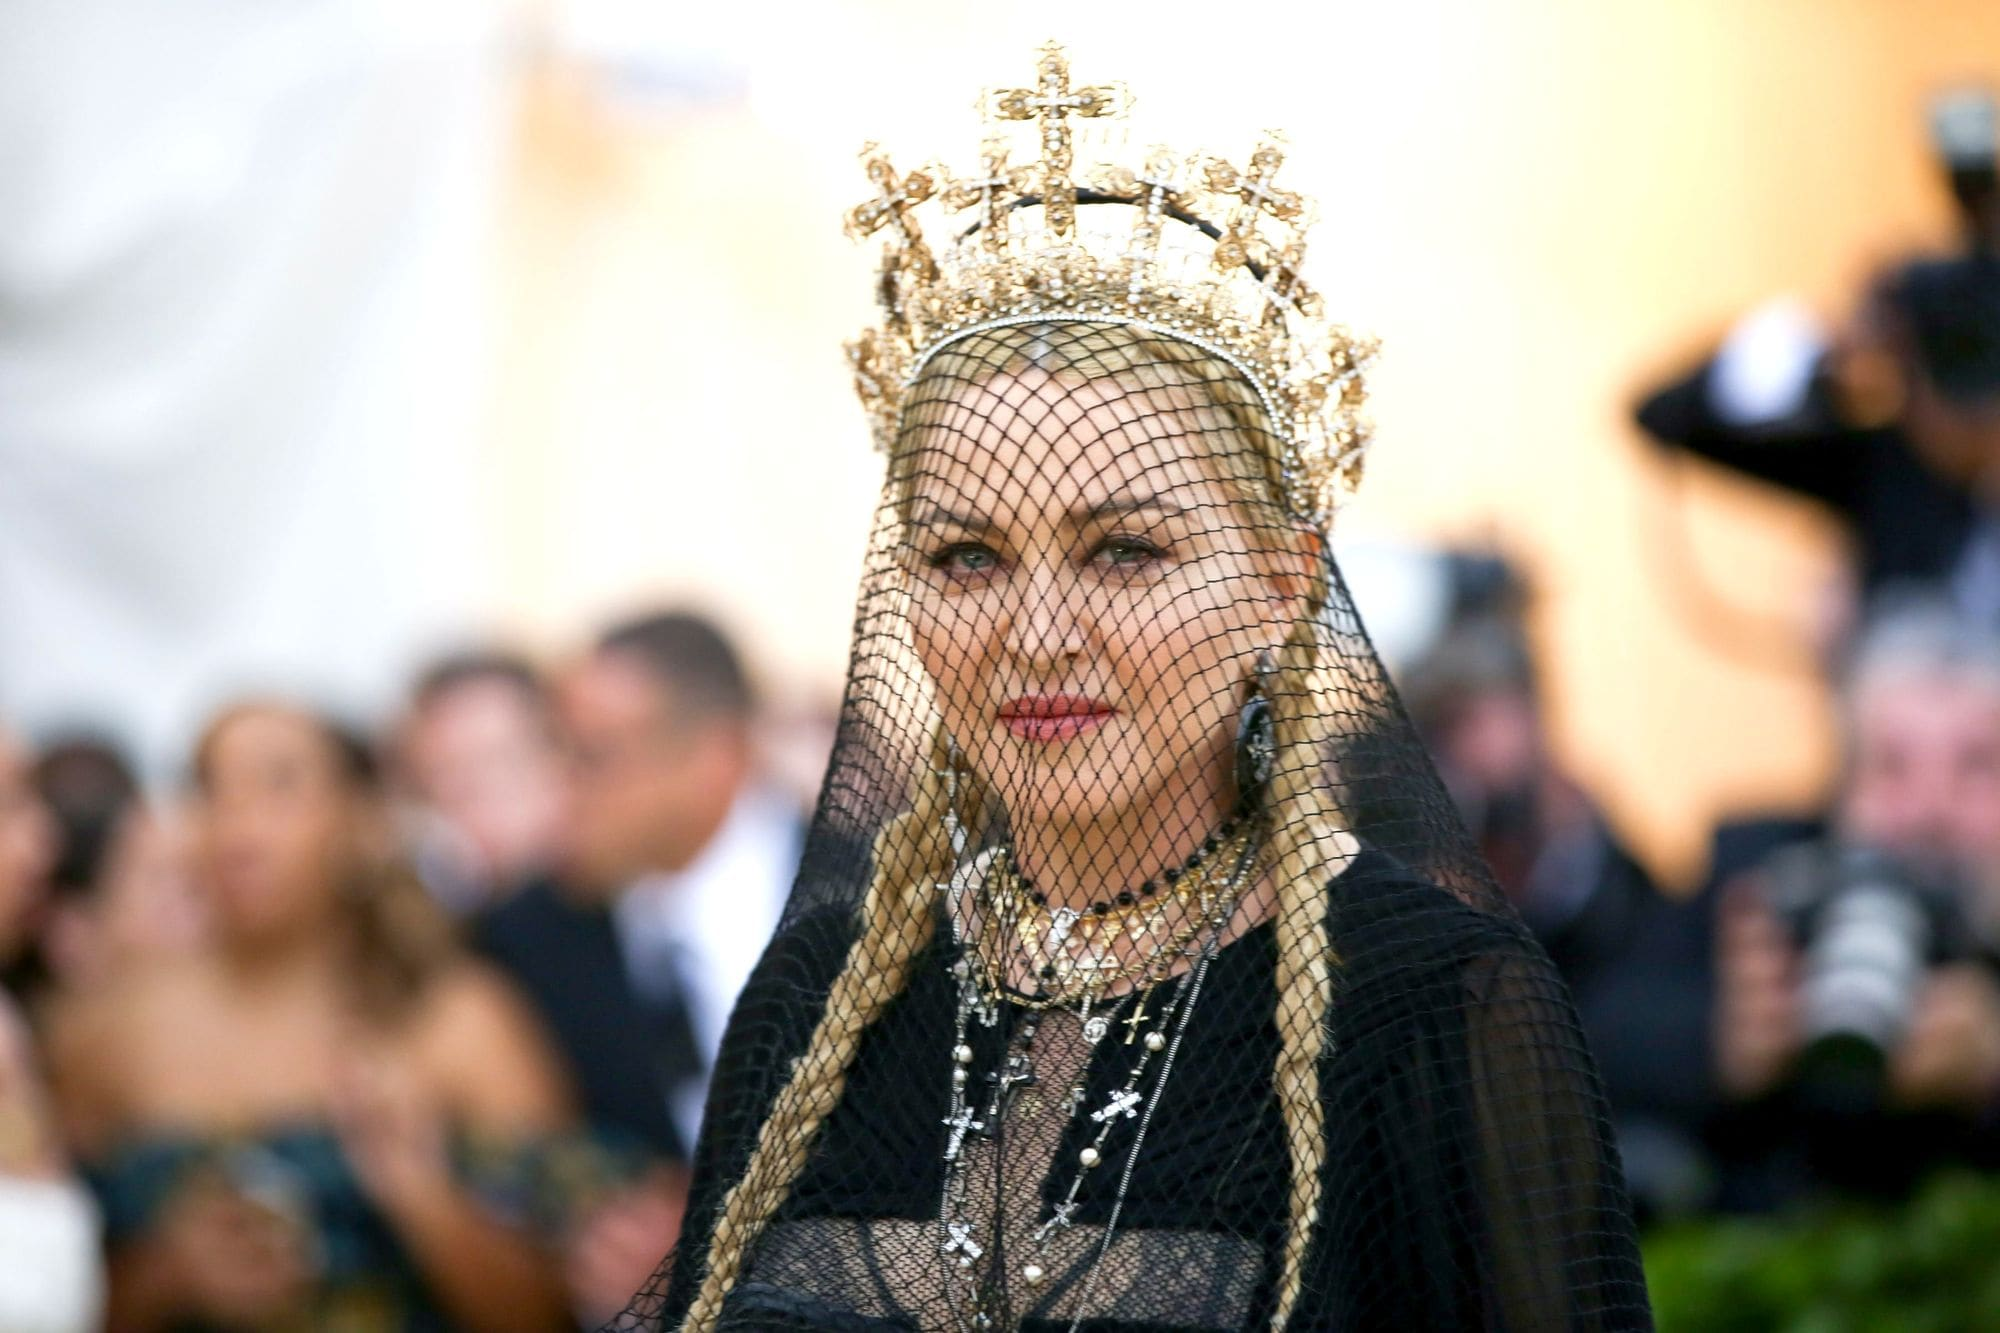 Madonna at the 2018 Met Gala with her blonde hair in two pigtail braids with a black veil and gold crown.